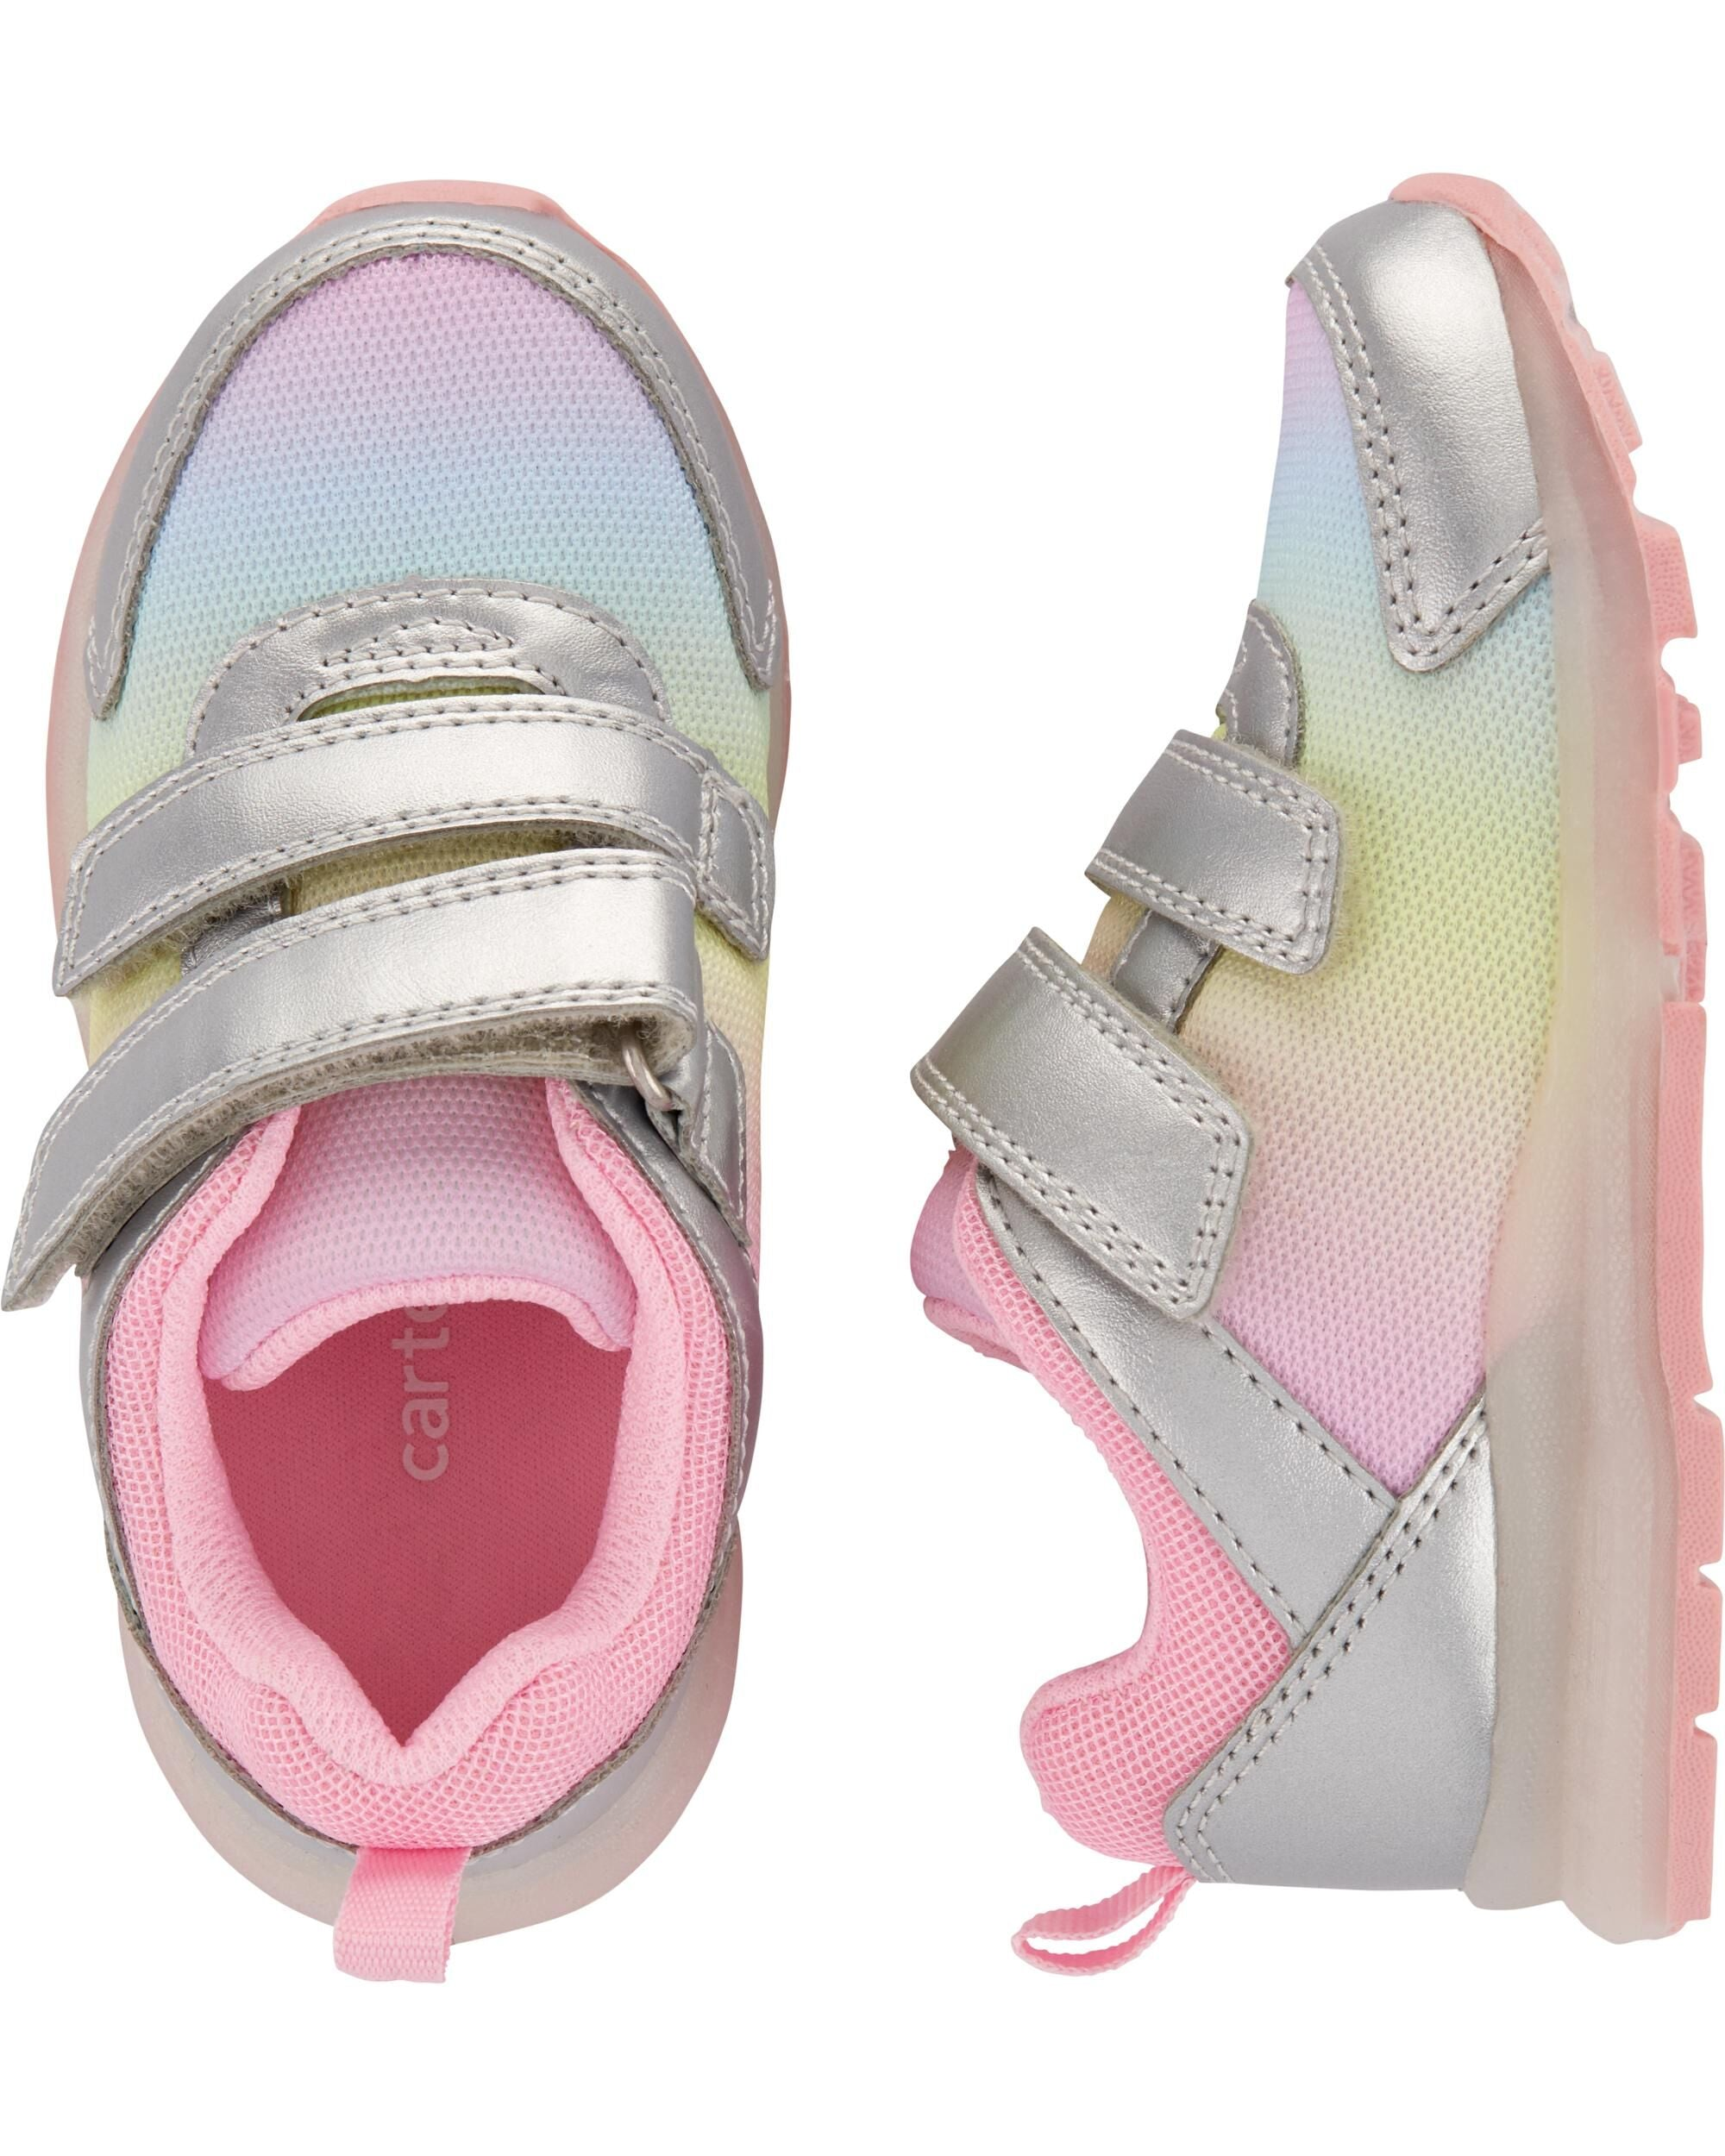 223a4d4b9 Carter s Light-Up Sneakers – Yashry